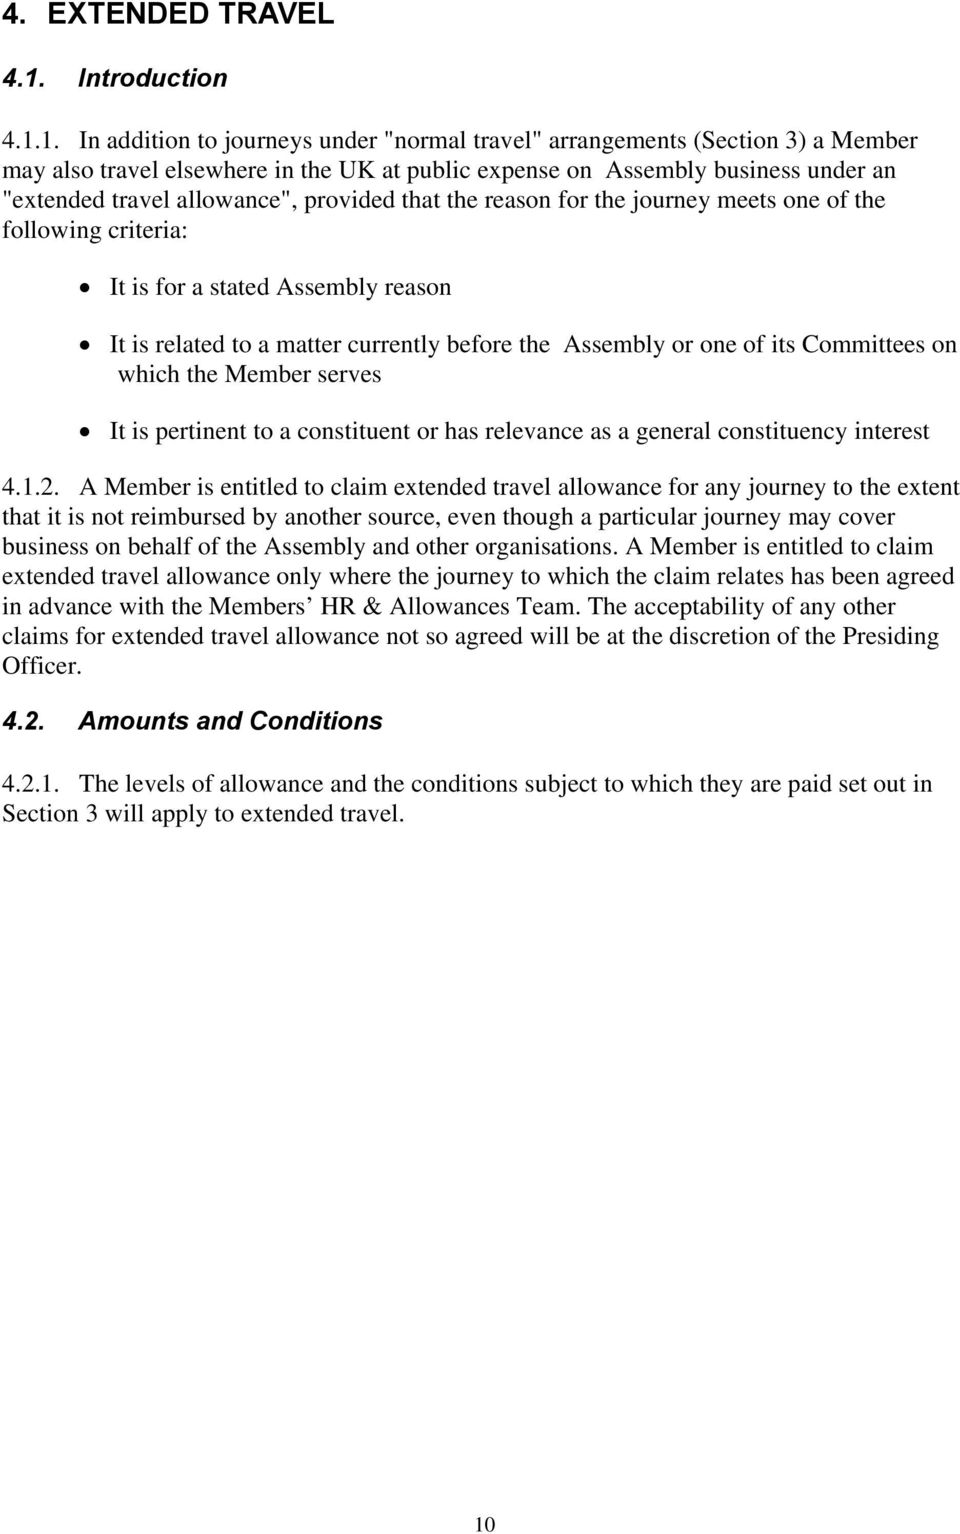 "1. In addition to journeys under ""normal travel"" arrangements (Section 3) a Member may also travel elsewhere in the UK at public expense on Assembly business under an ""extended travel allowance"","